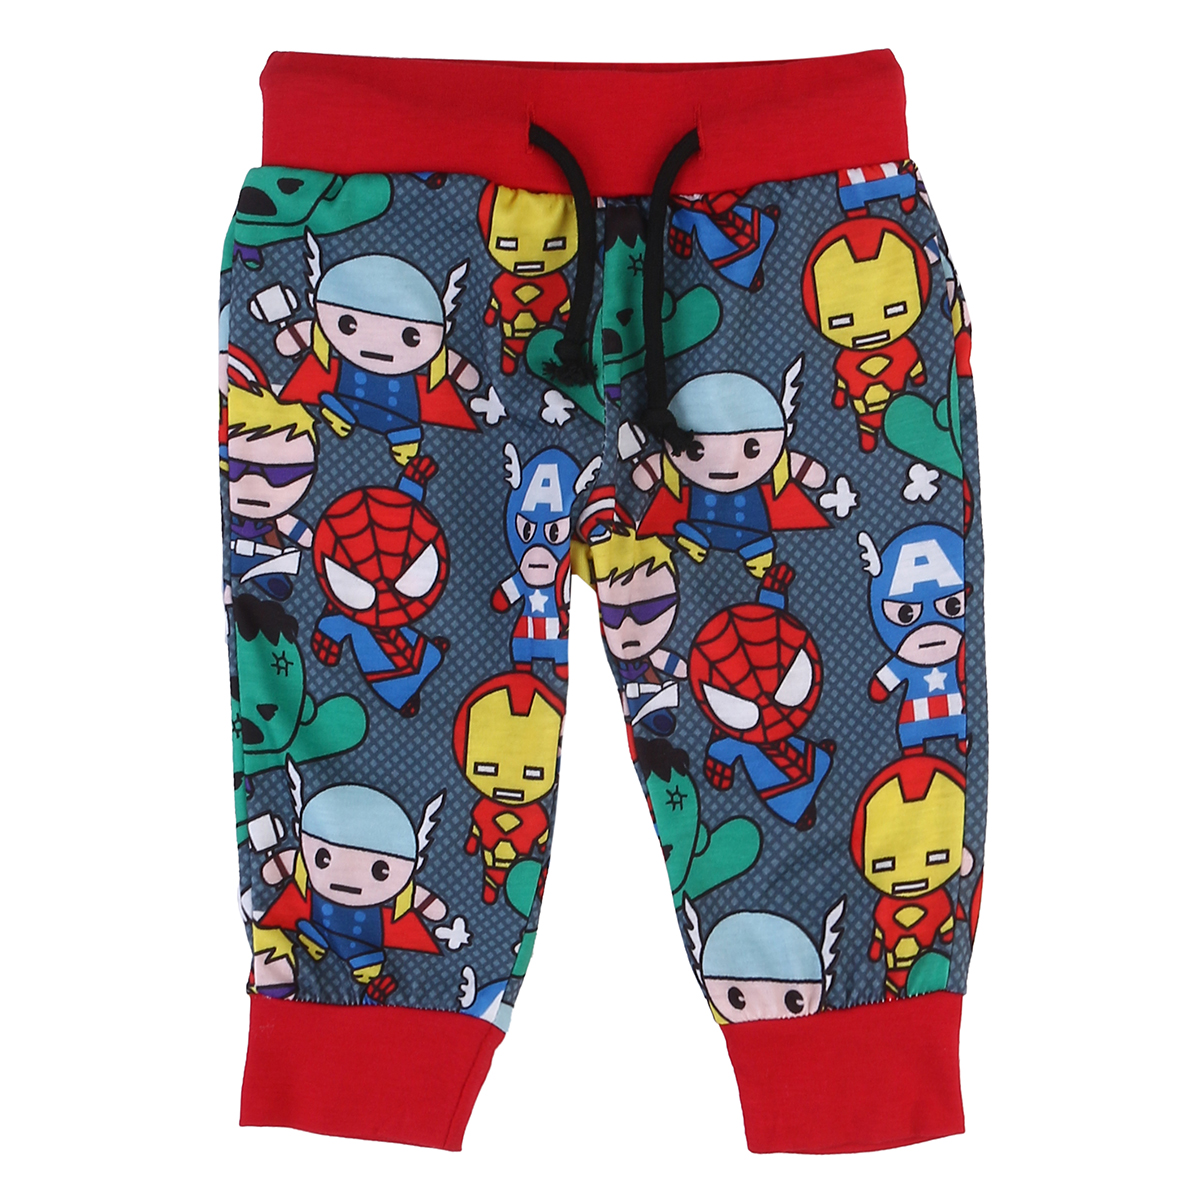 Newborn Kids Baby Boys Cotton Cartoon Printed Long Pants Drawstring Buttom Clothes Leggings Outfits